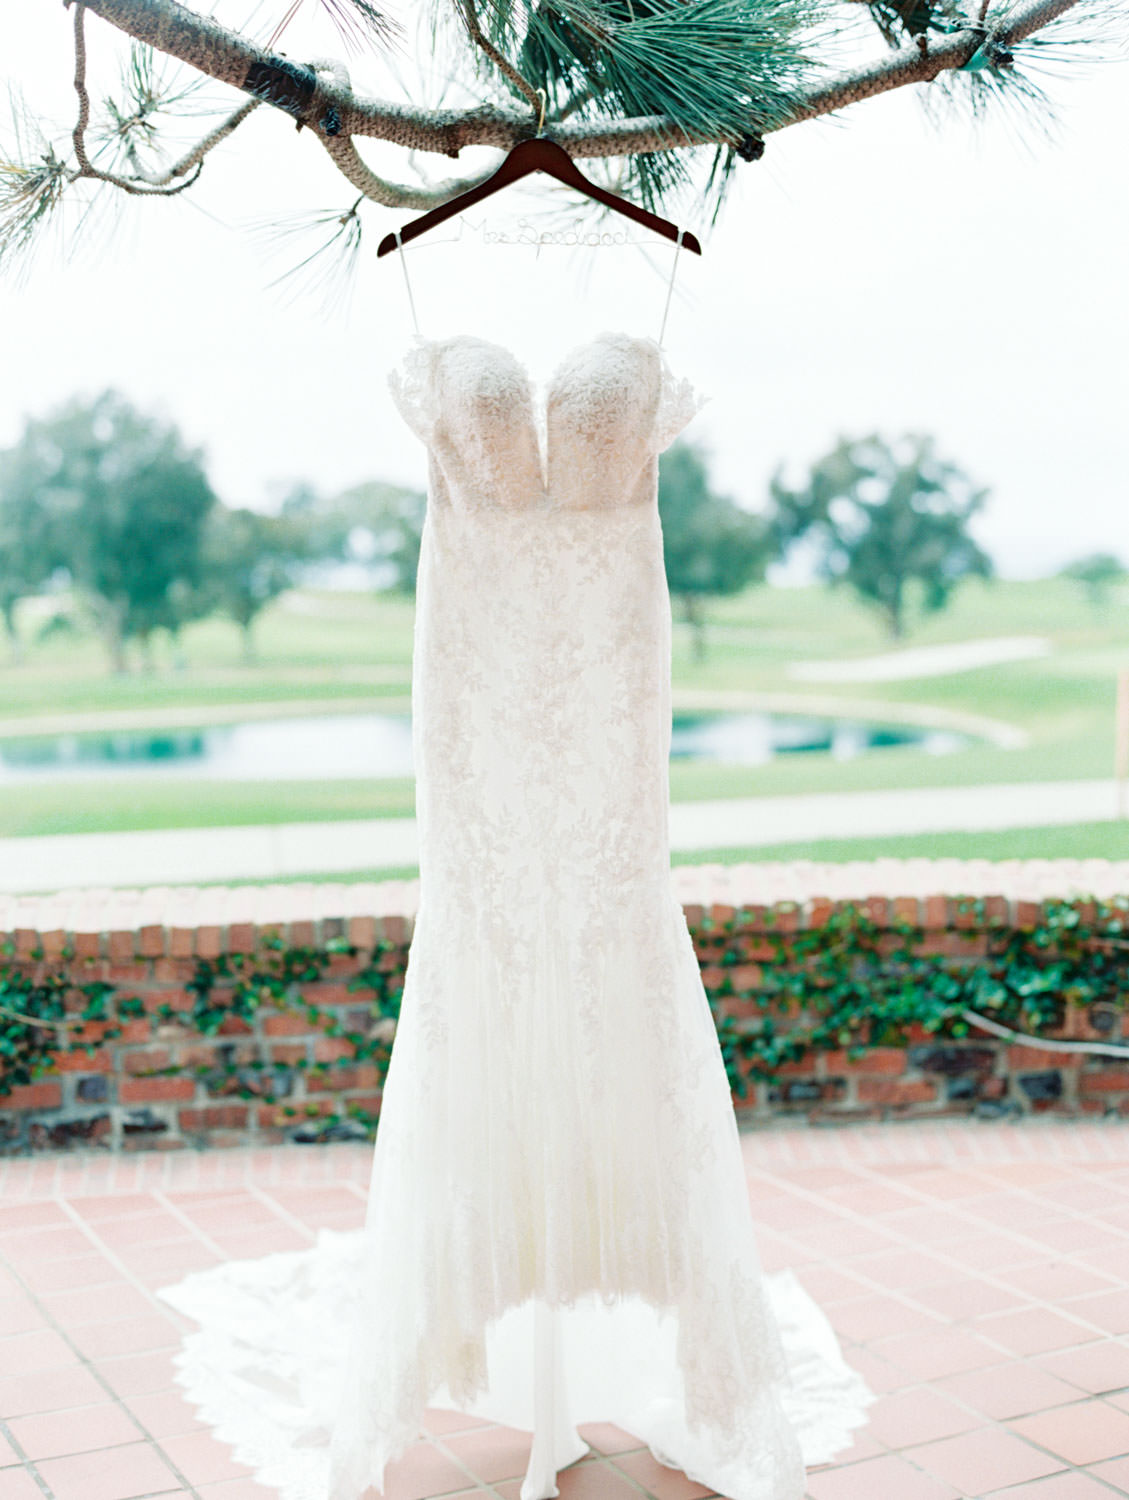 Pronovias sweetheart neckline lace gown with removable sleeves, film photography by Cavin Elizabeth Photography